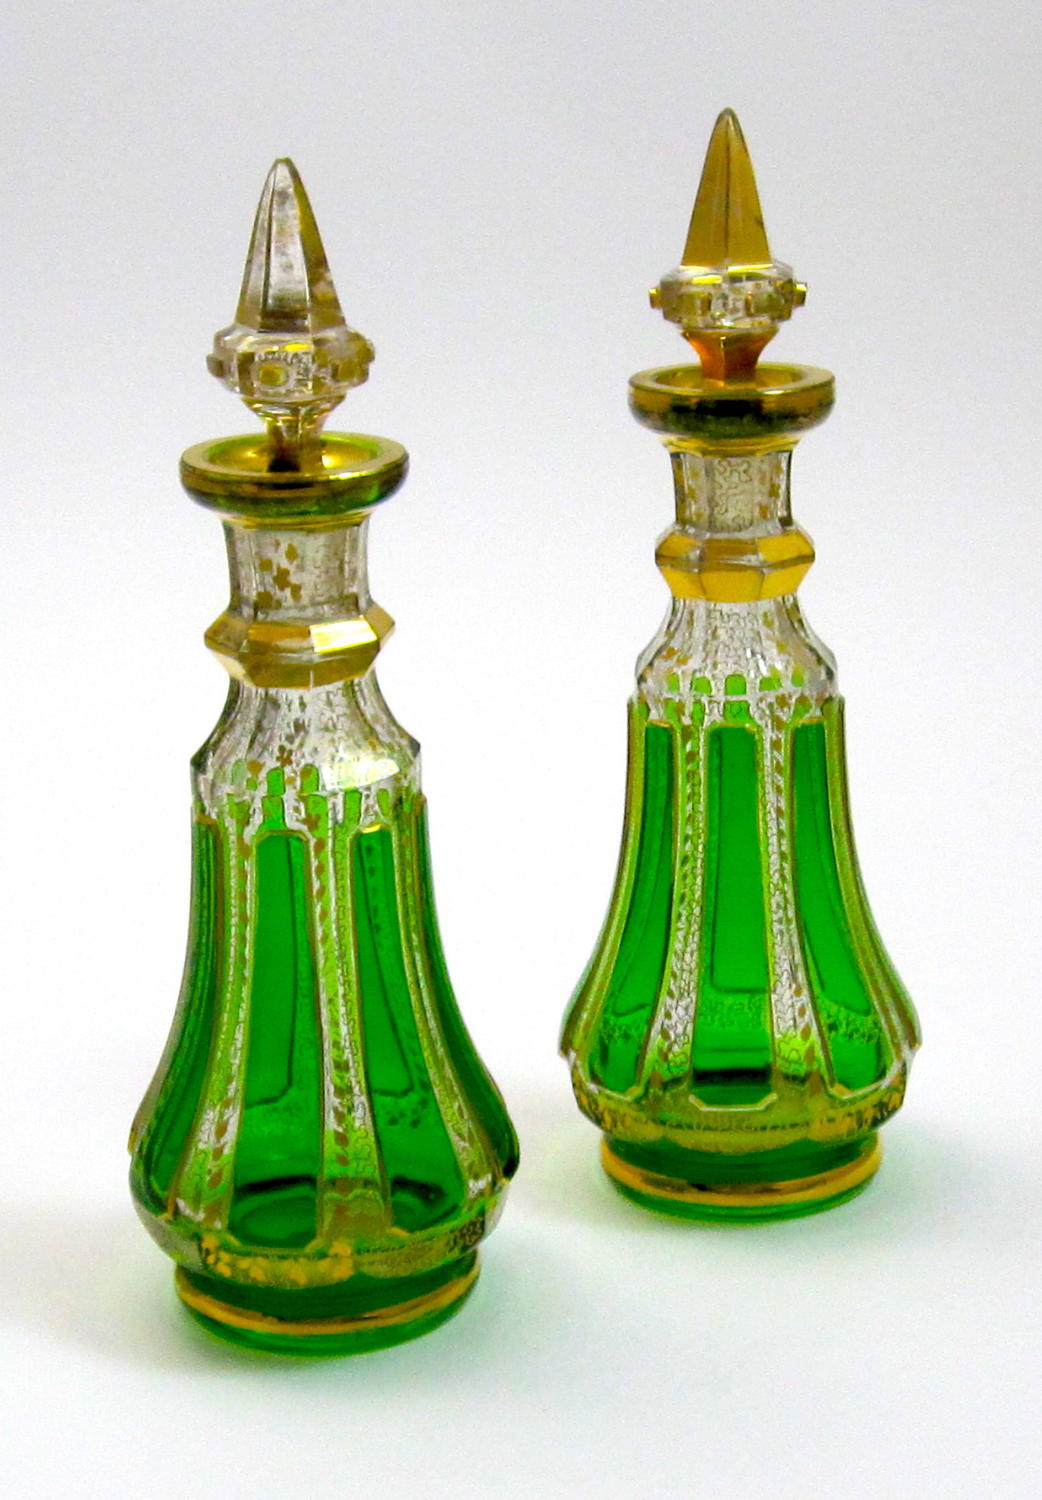 Pair of Antique MOSER Perfume Bottles